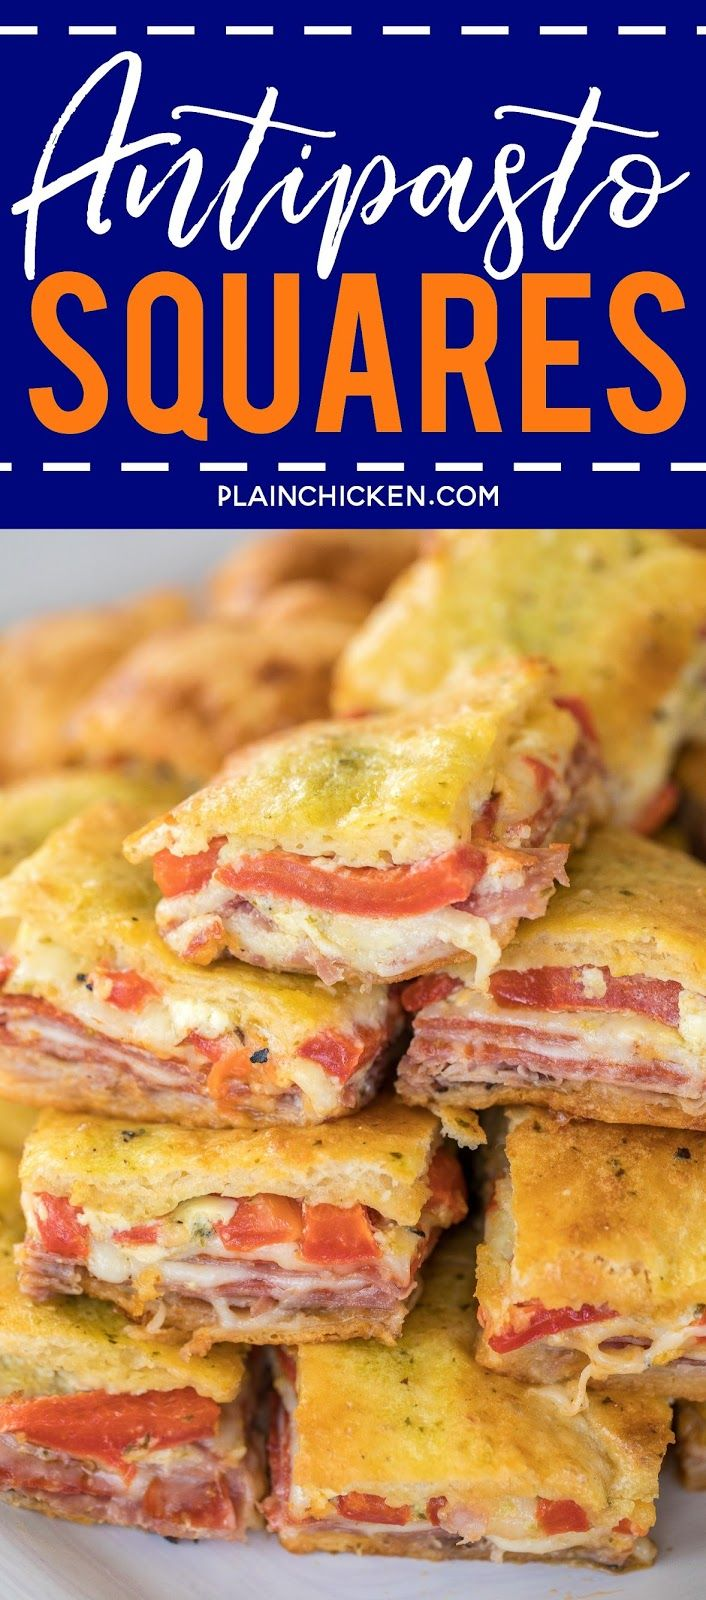 Antipasto Squares recipe - SO GOOD!! Crescent rolls stuffed with ham, salami, pepperoni, provolone, swiss, and roasted red peppers. then topped with a parmesan cheese, egg and pesto mixture and baked. These things are ridiculously good!!! There are never any leftovers when I take these to party! #appetizer #partyfood #crescentrolls #antipastosquares